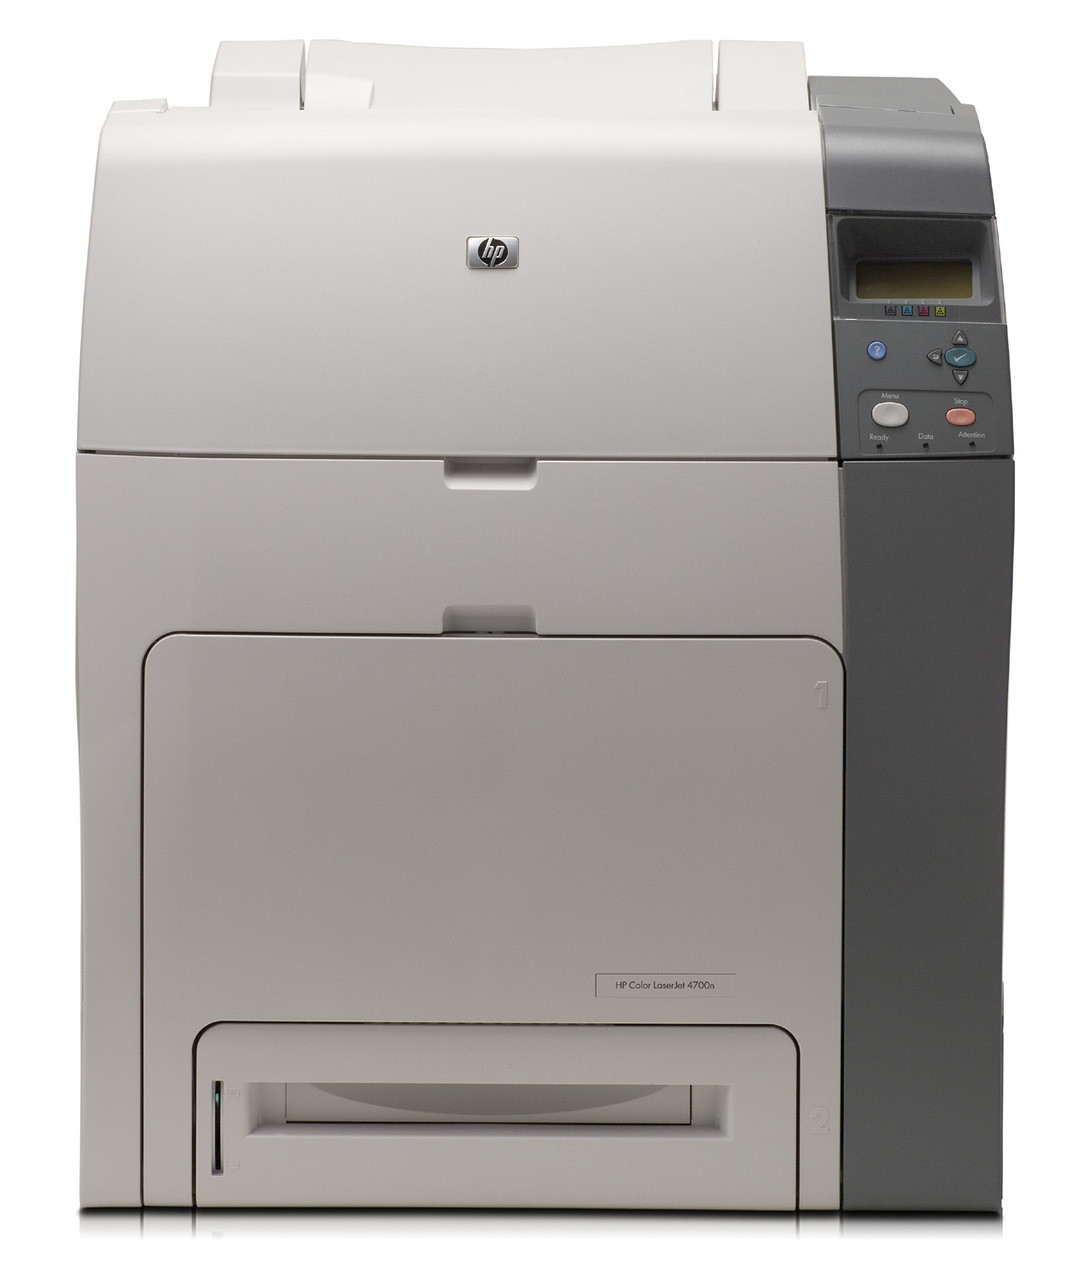 HP Color LaserJet CP4005n - CB503A - HP Laser Printer for sale